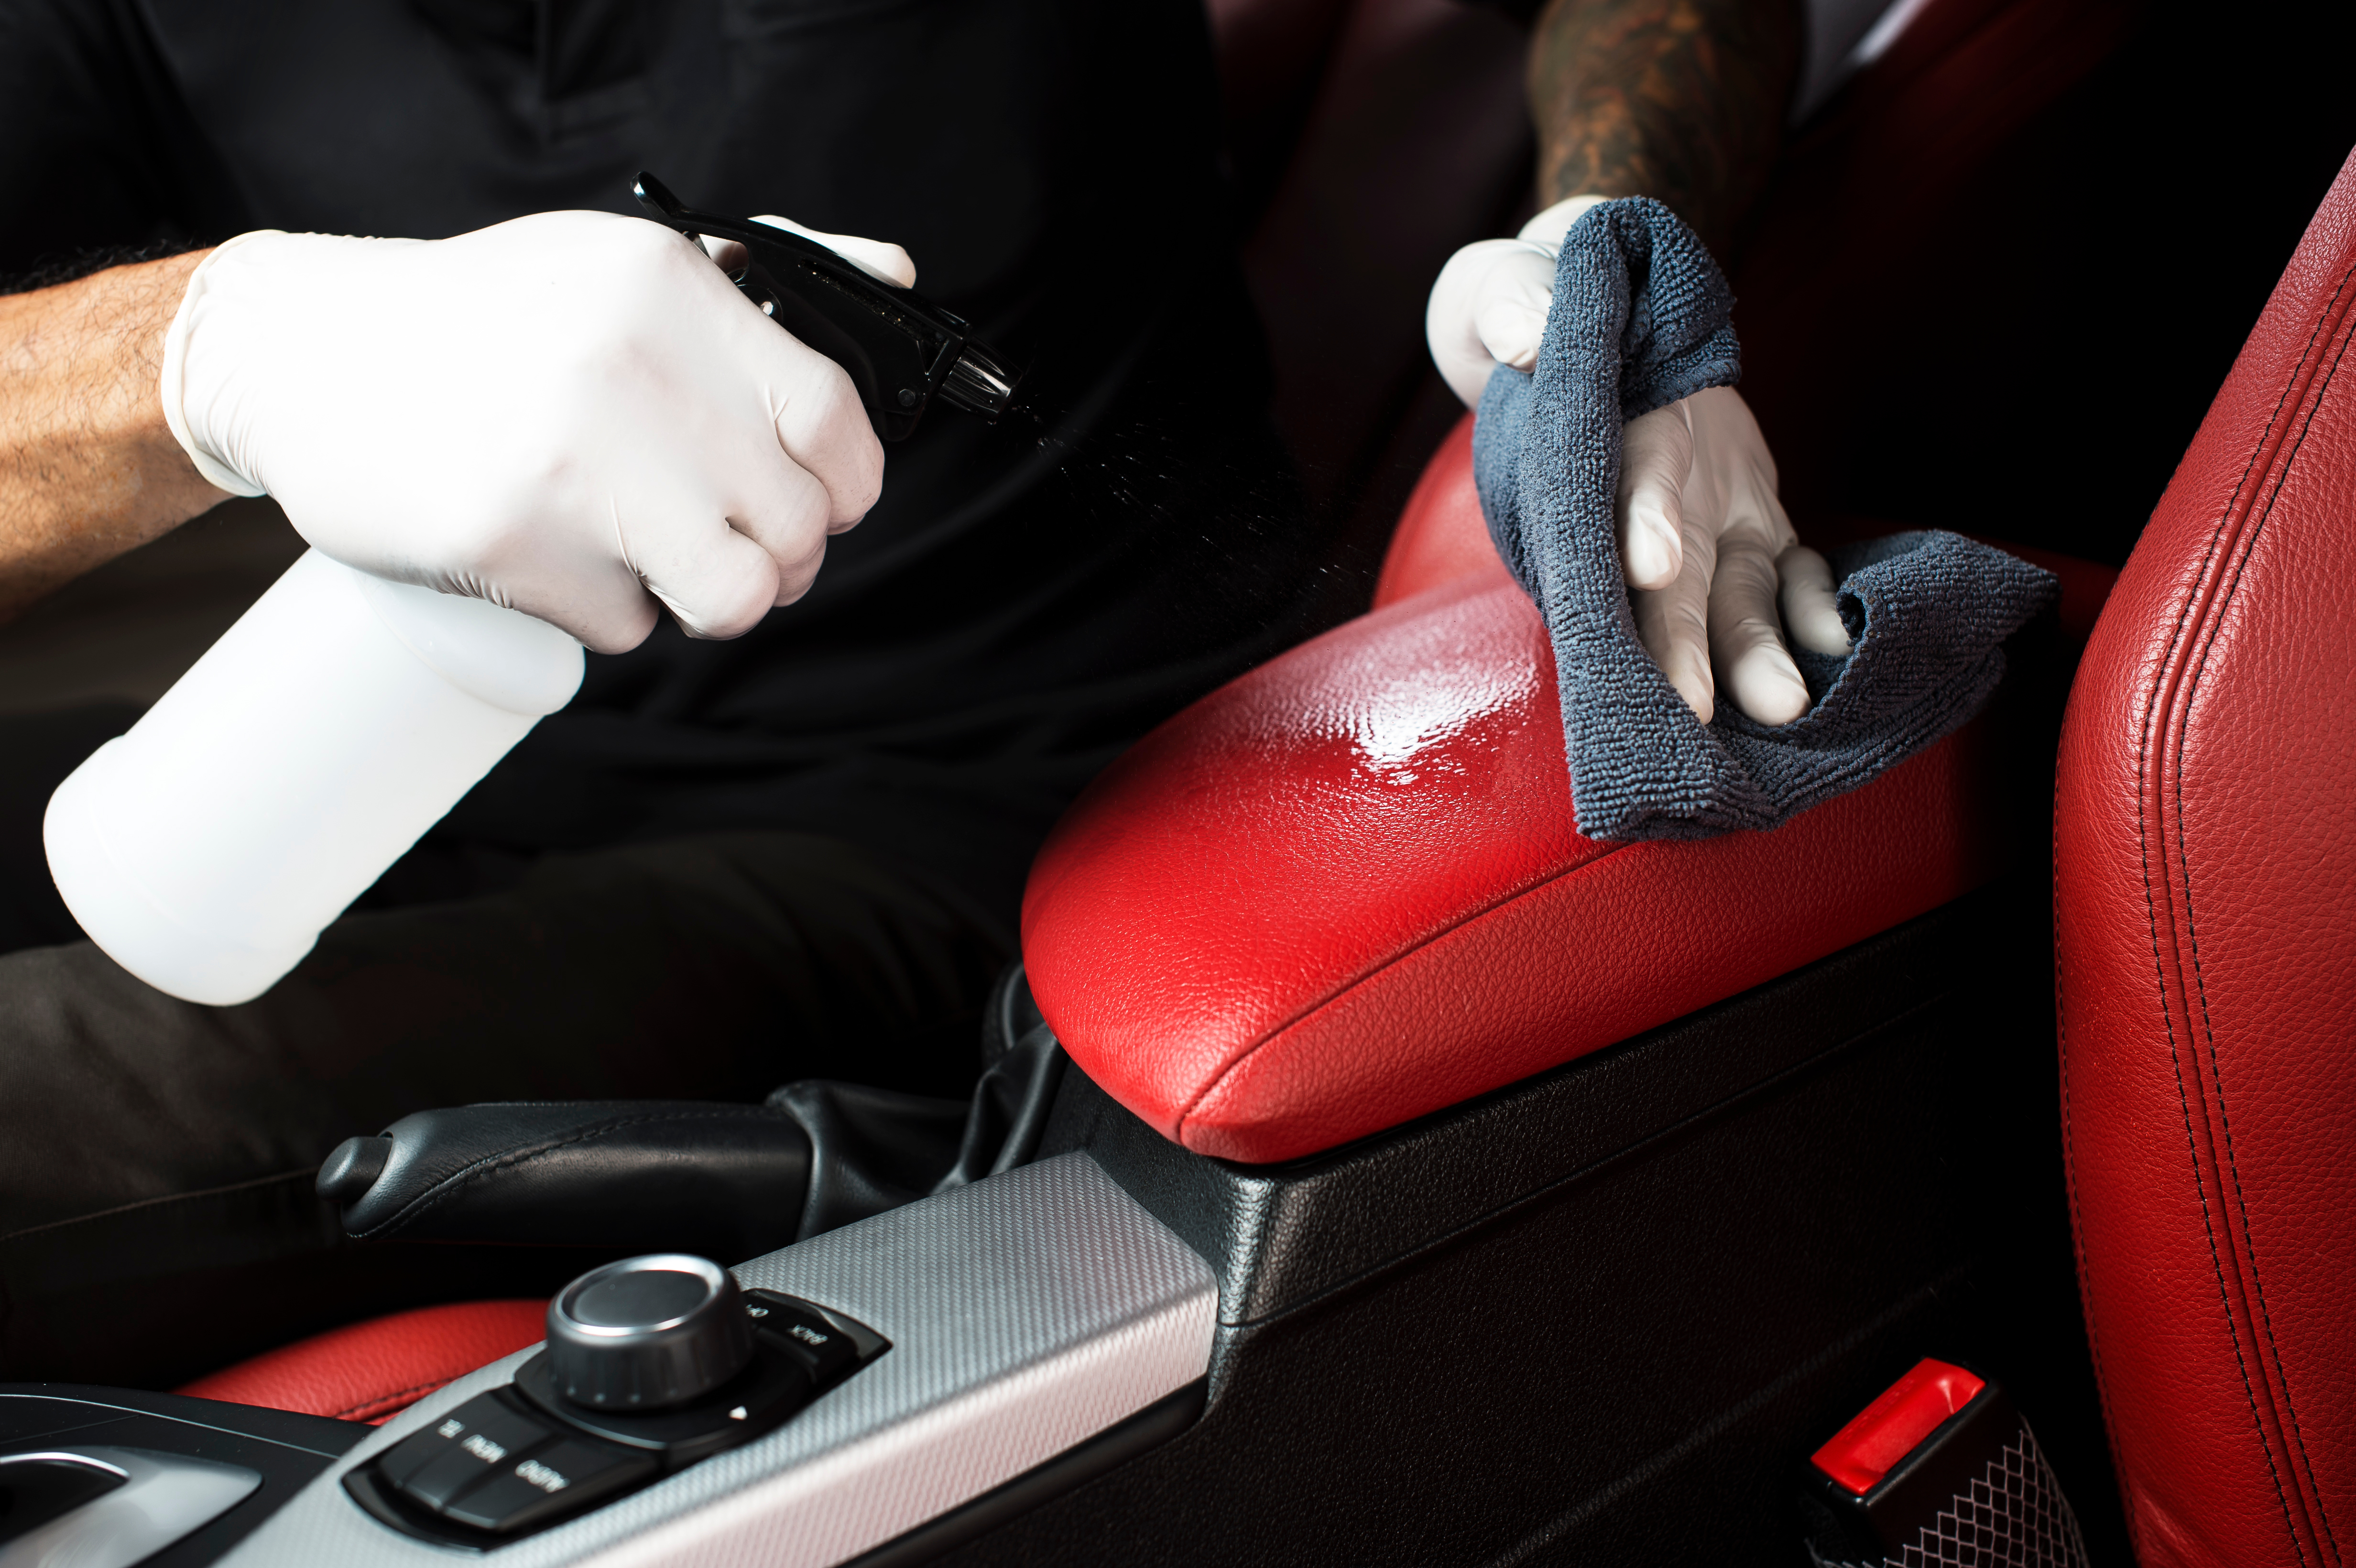 Red and black car interior being cleaned